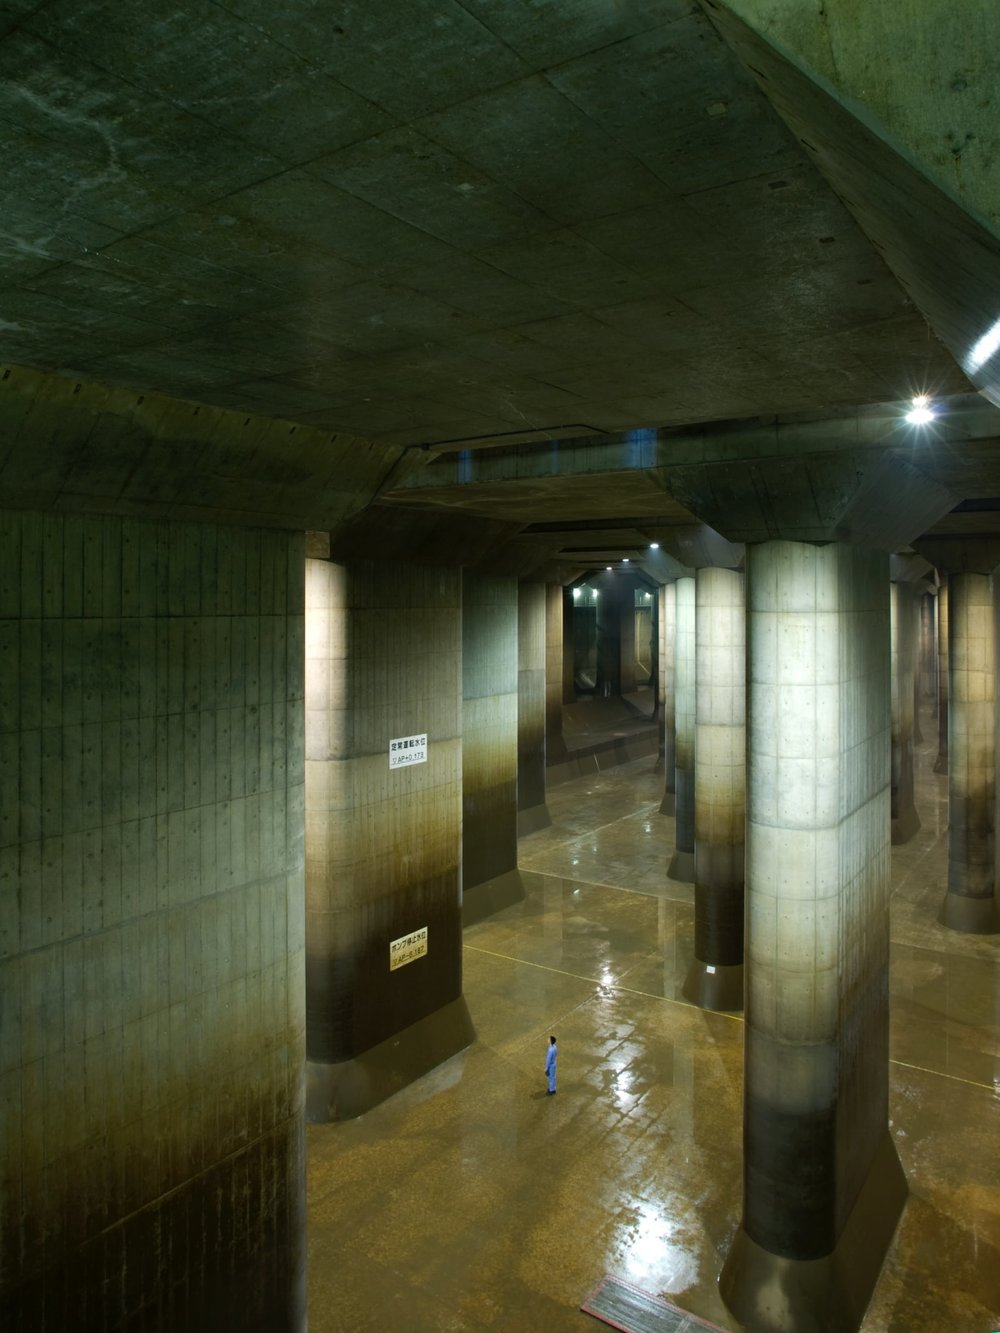 alessio-guarino-metropolitan-area-outer-underground-discharge-channel-4.jpg